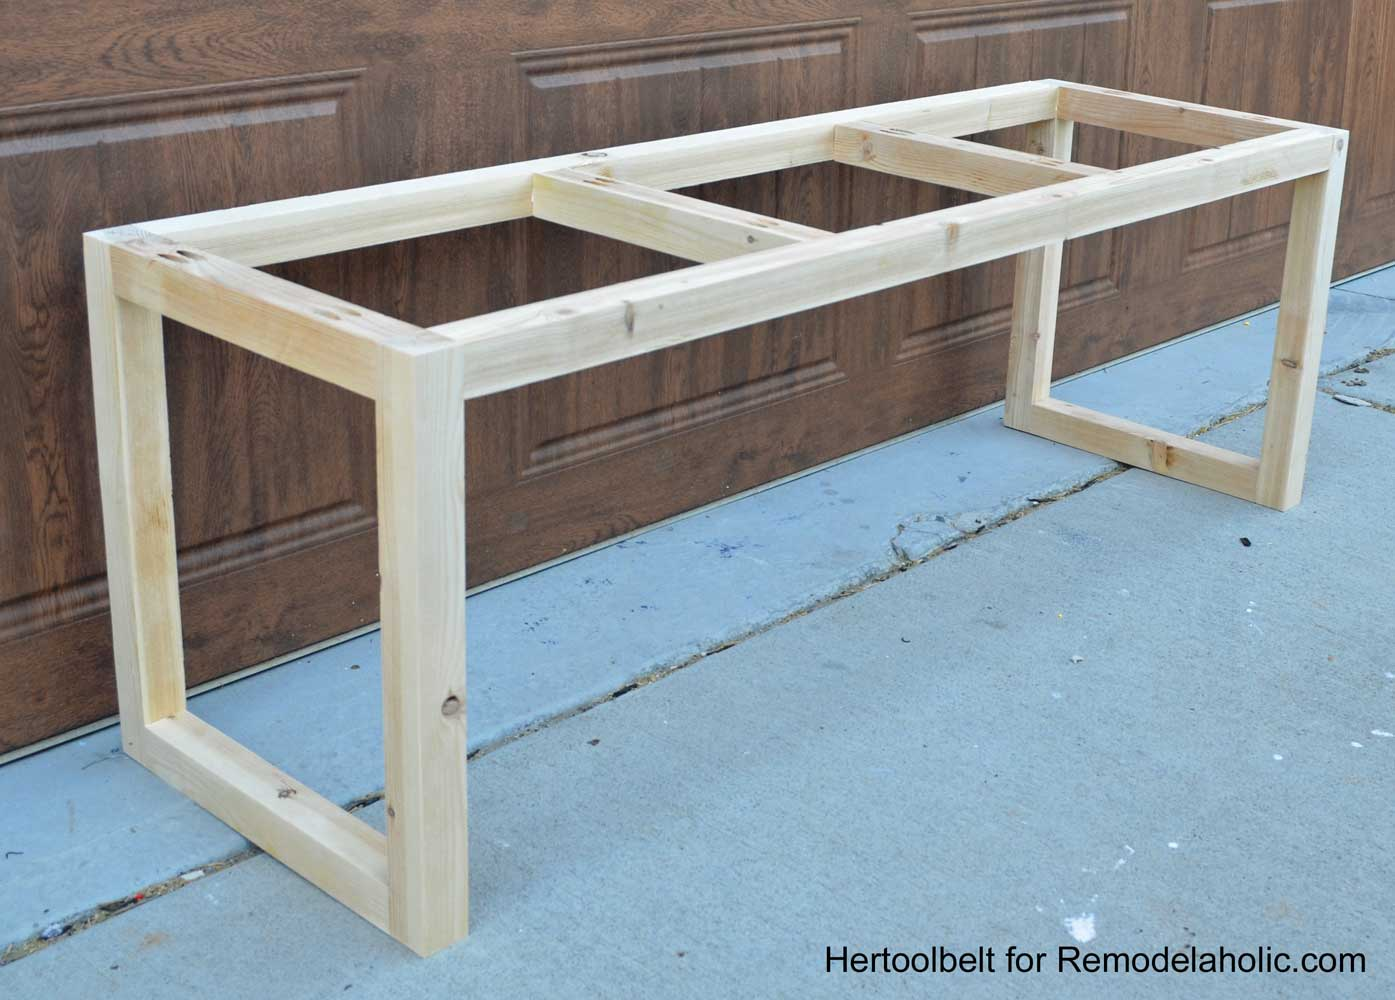 Albert Blog: DIY Wood Chevron Bench with Box Frame